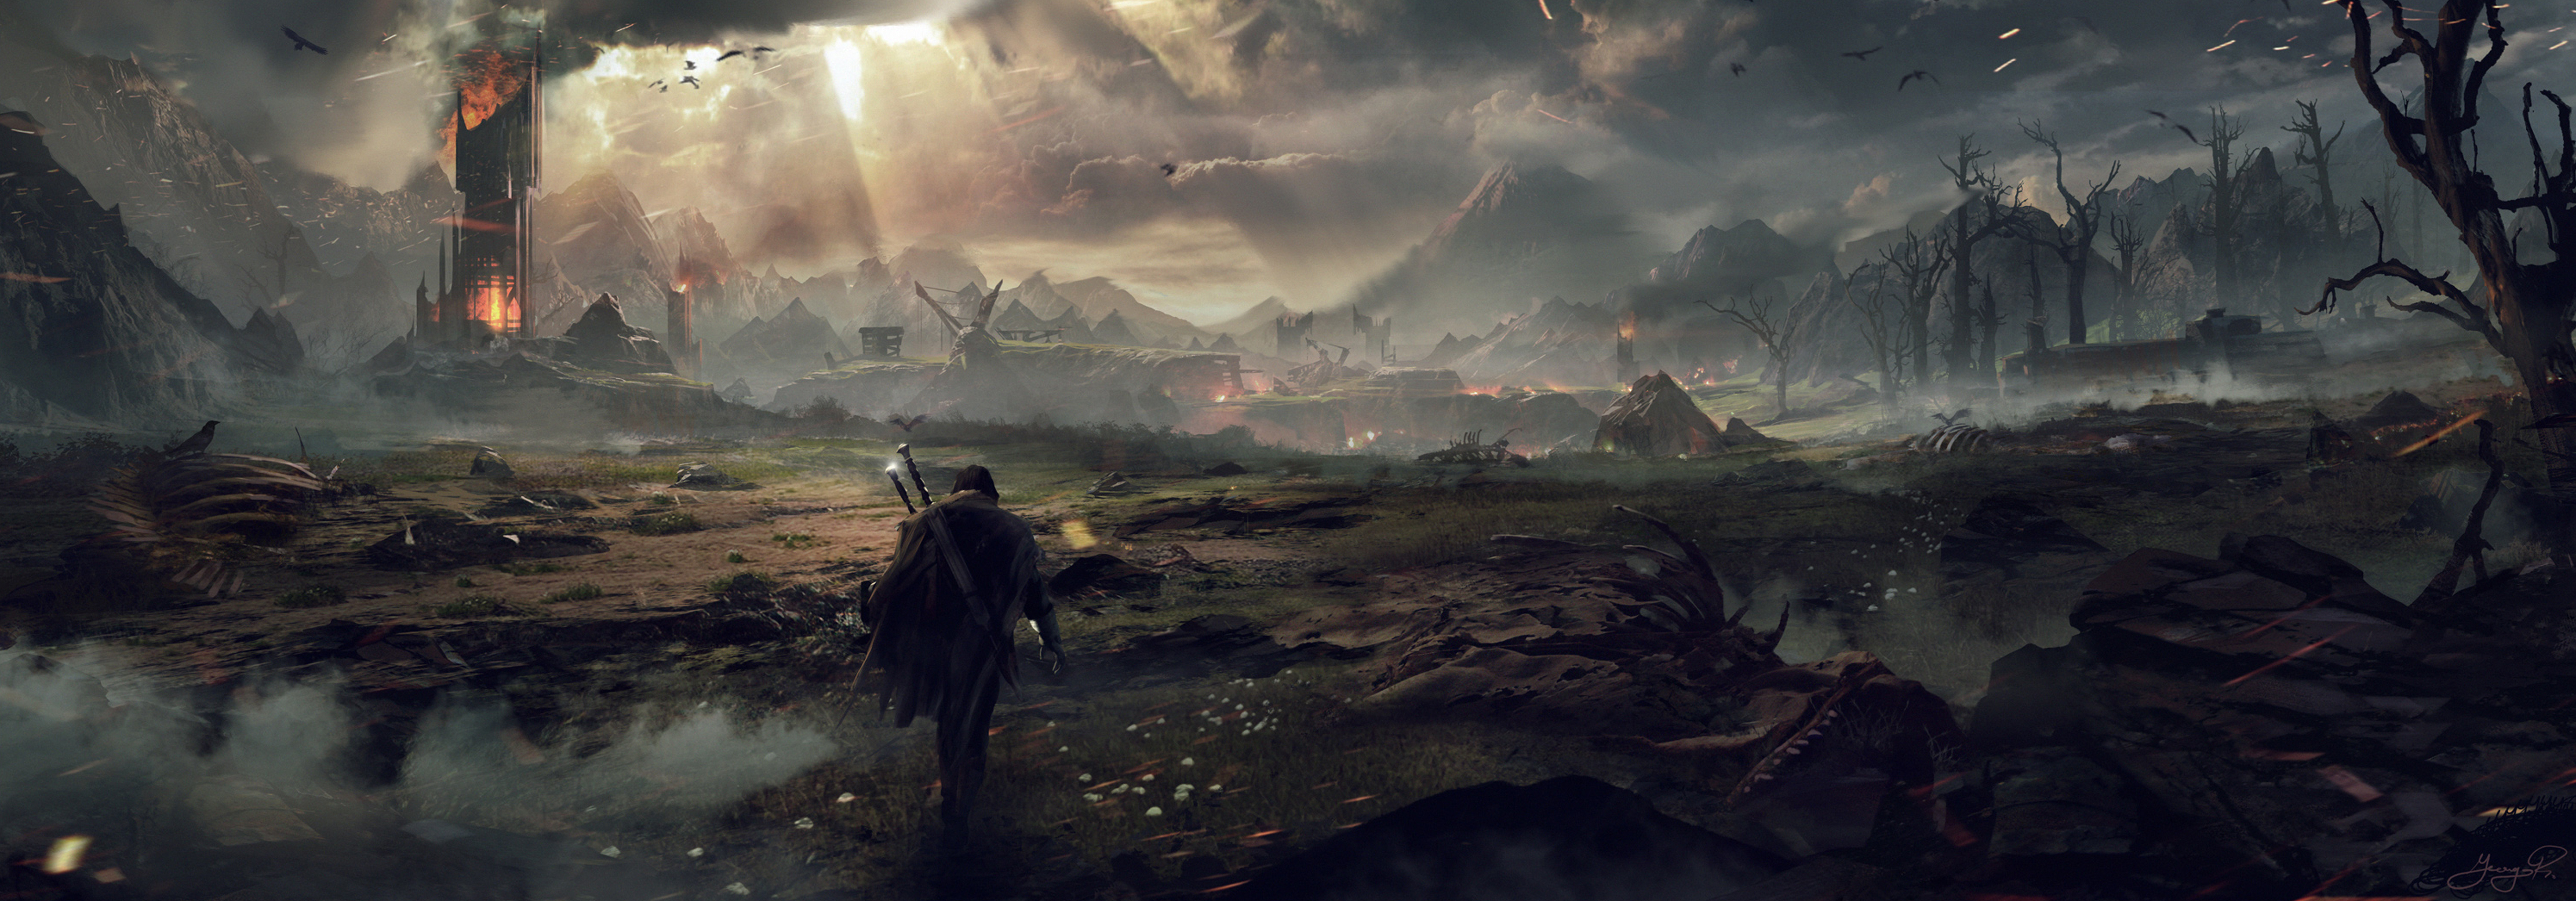 General 7475x2615 Middle-earth: Shadow of Mordor eagle video games fire skeleton sword concept art The Lord of the Rings drawing dystopian fantasy art digital art artwork mountains clouds sky dead trees warrior trees forest sun rays birds alone mist video game art 2014 (Year)